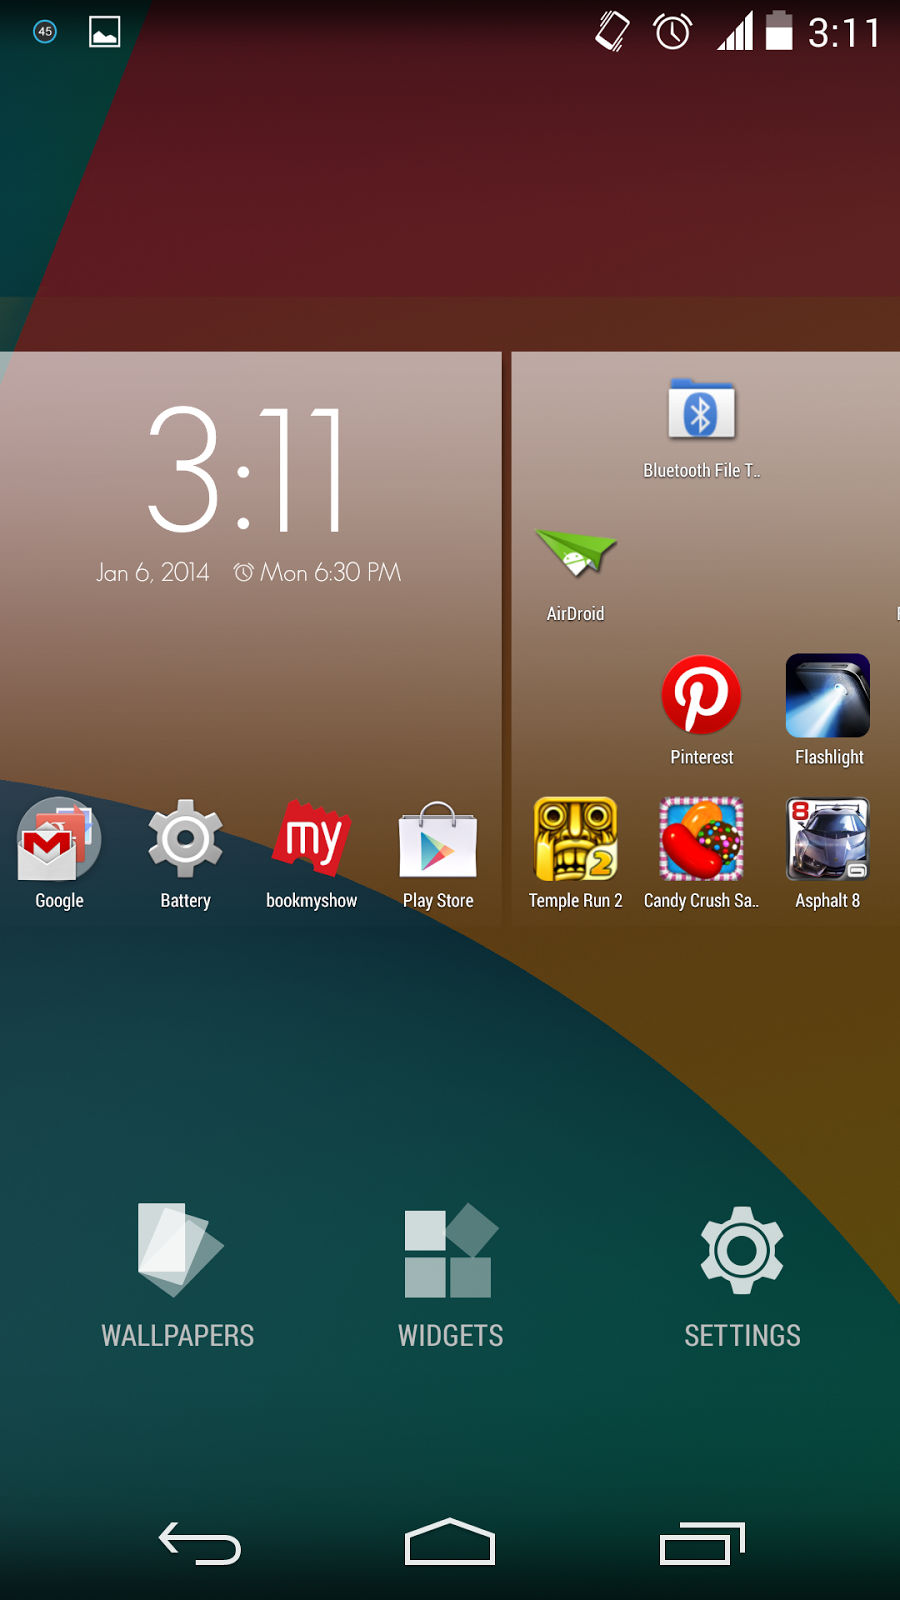 Google+LG+Nexus+5+Android+KitKat+Review+Handson+Detailed+Benchmark++%252811%2529.png